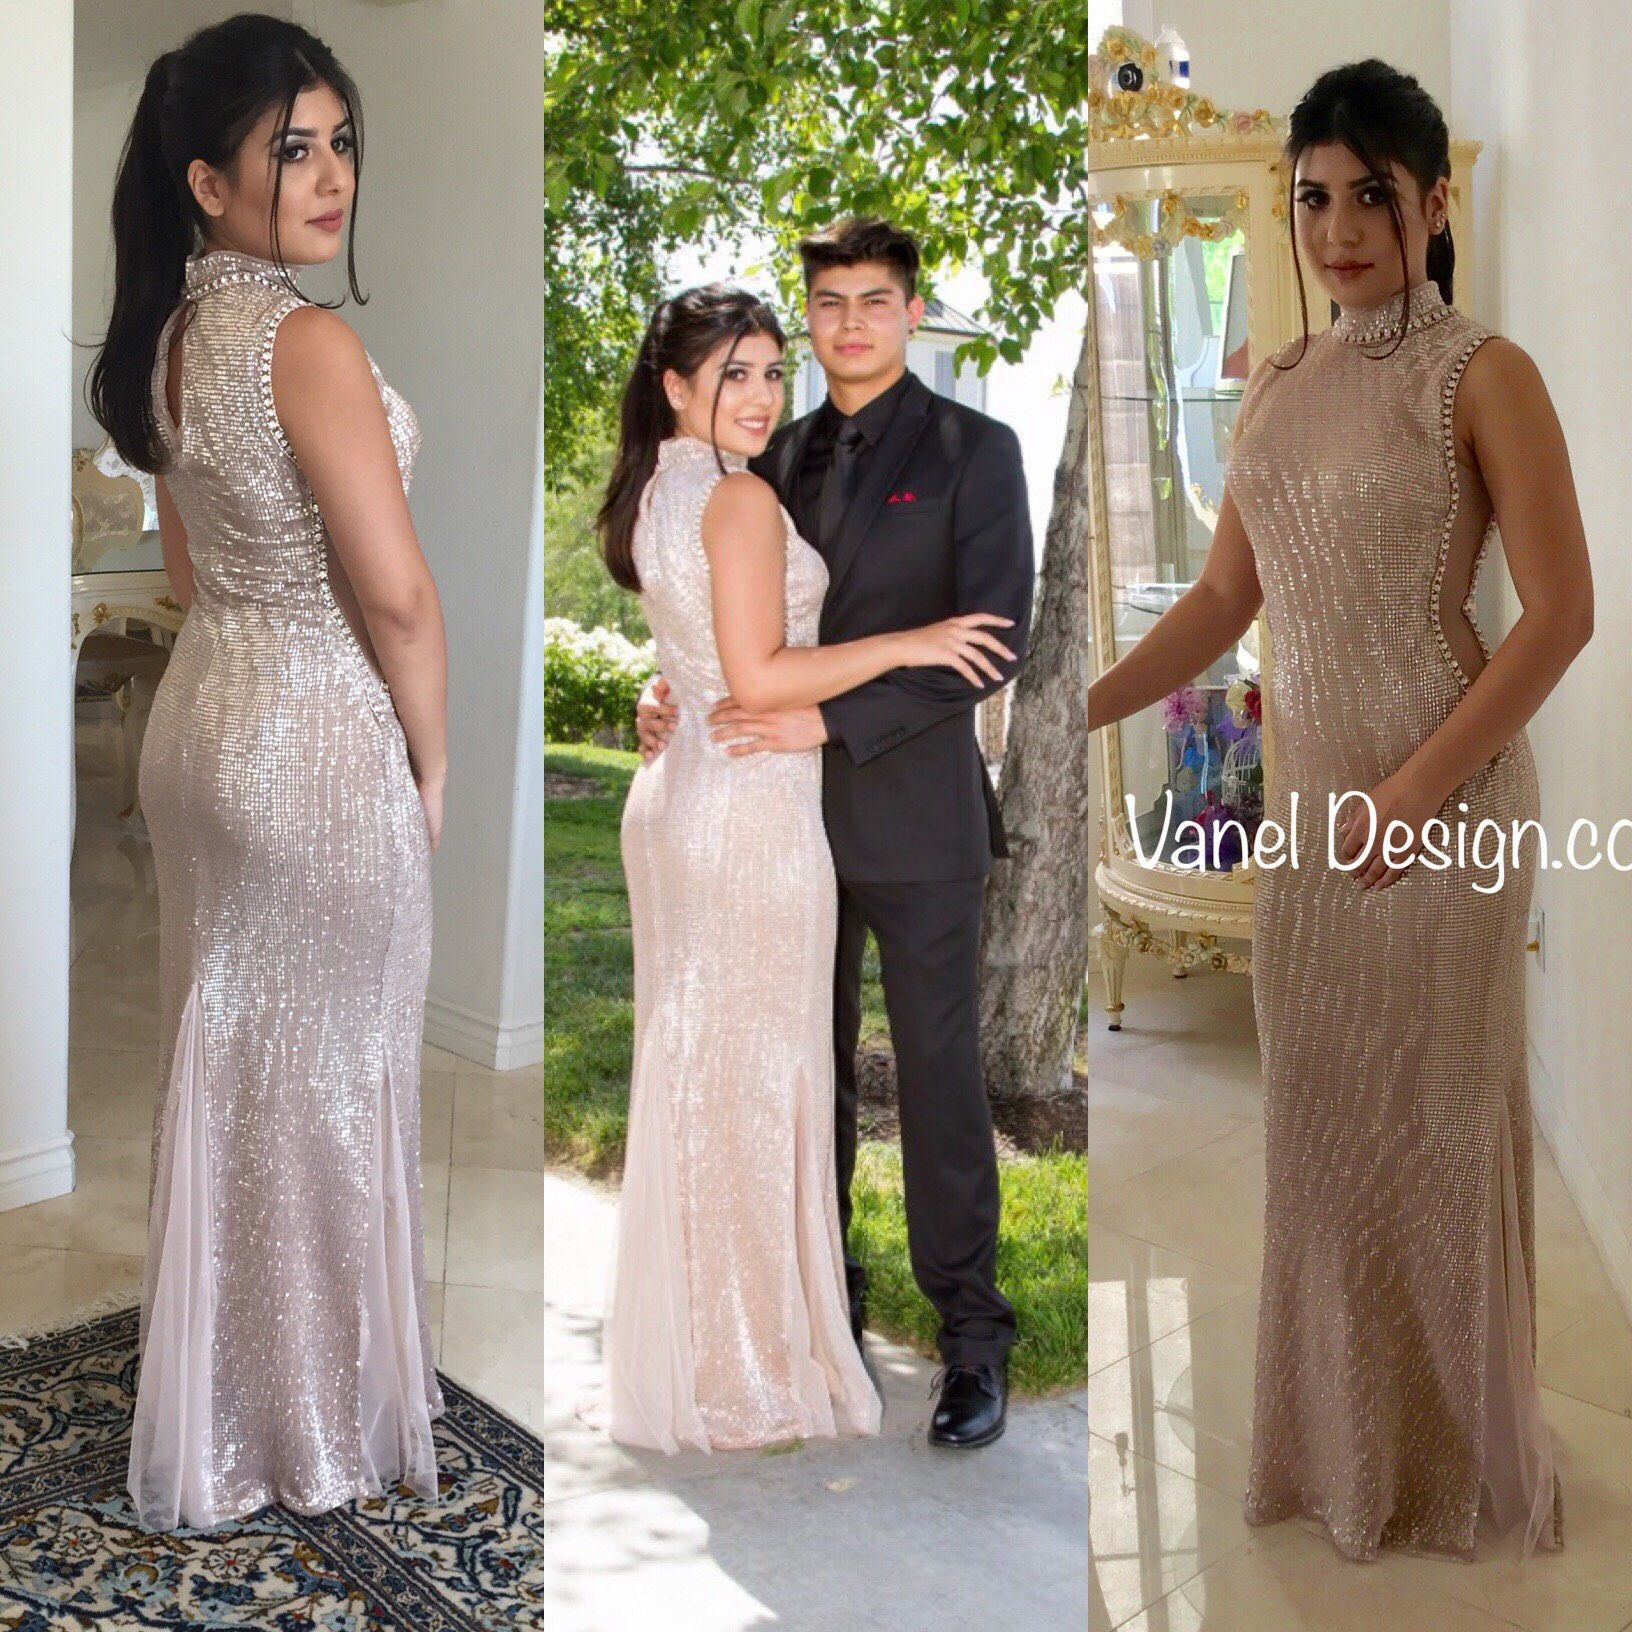 Prom dress bridesmaid dress sequins rosegold long champagne sequin